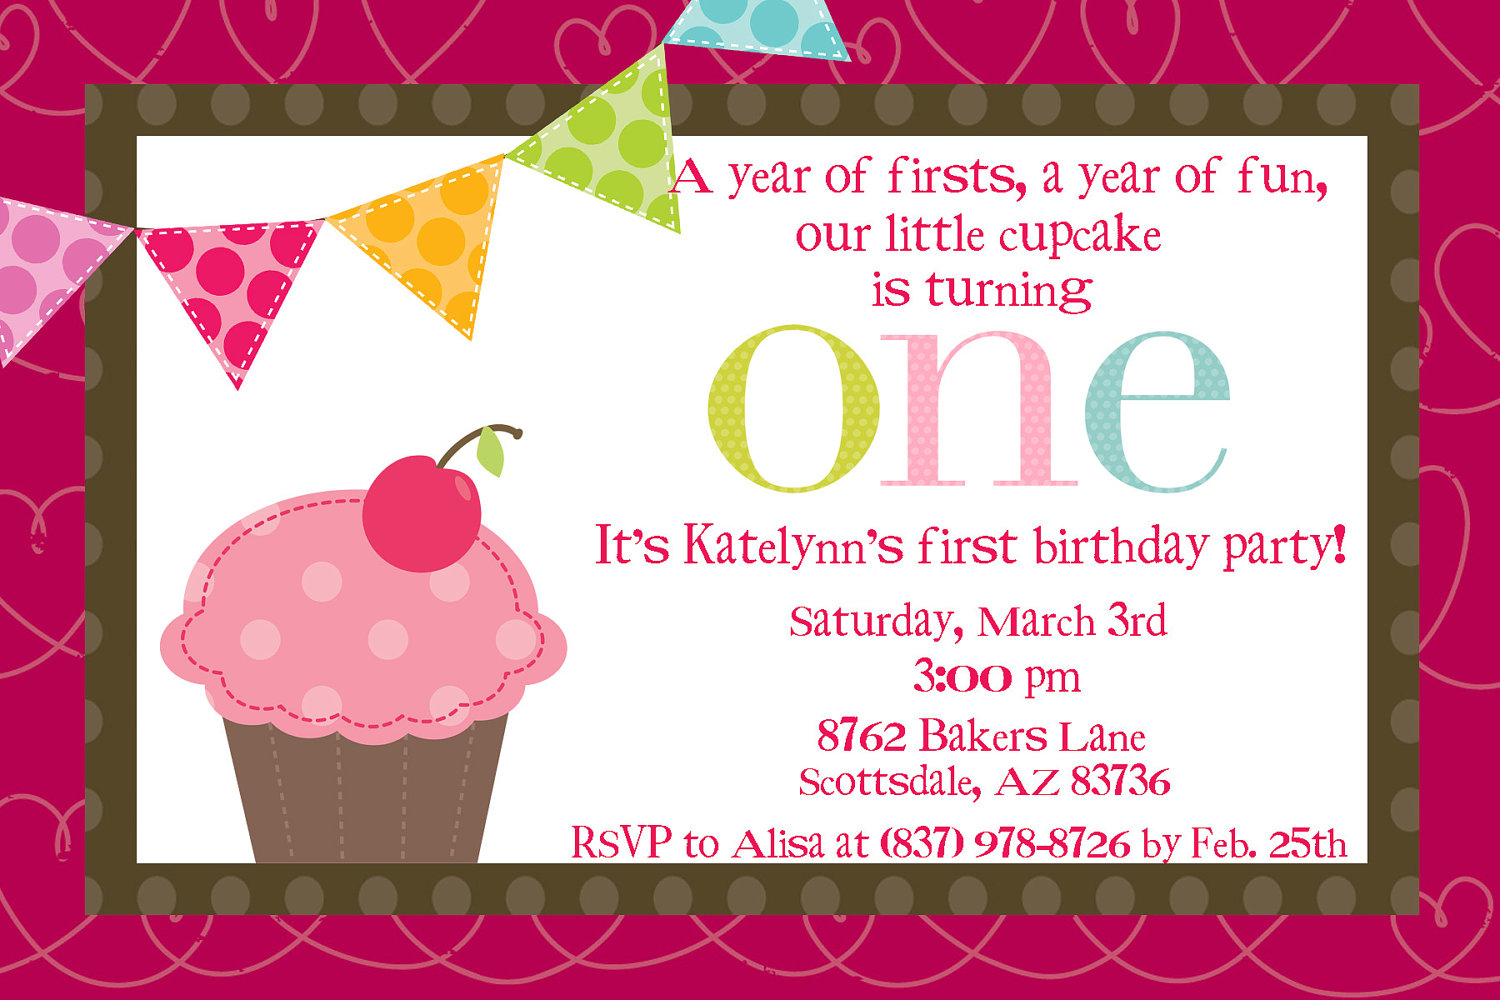 cupcake themed birthday party invitation wording ; cupcake-1st-birthday-invitations-ideas-about-how-to-design-Birthday-invitations-for-your-inspiration-8